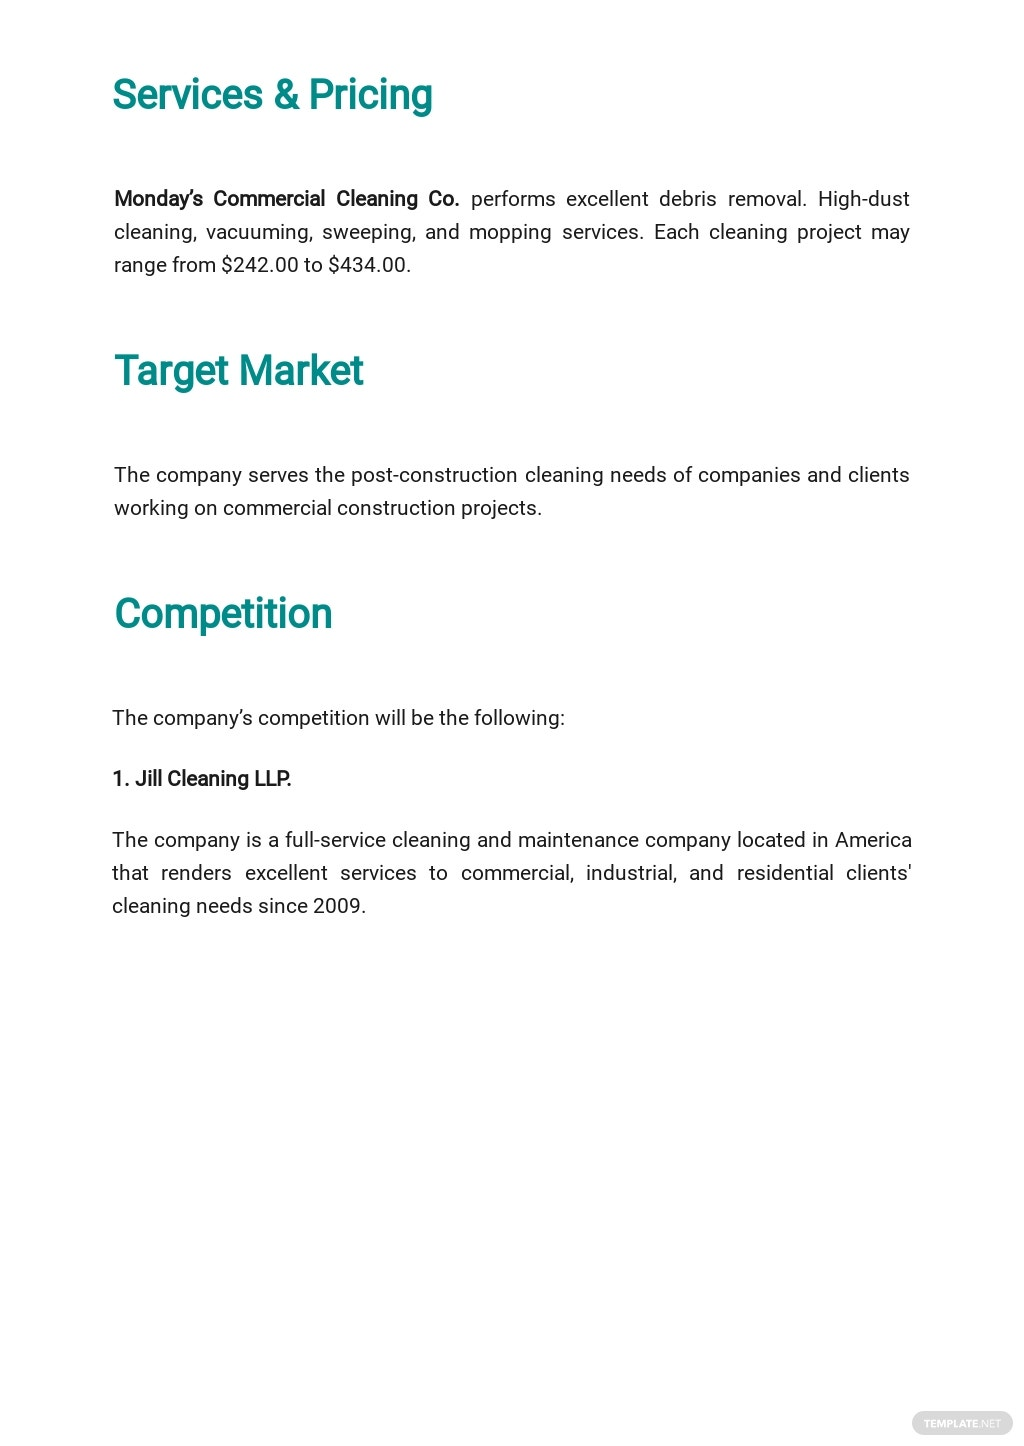 Post Construction Cleaning Business Plan Template 2.jpe